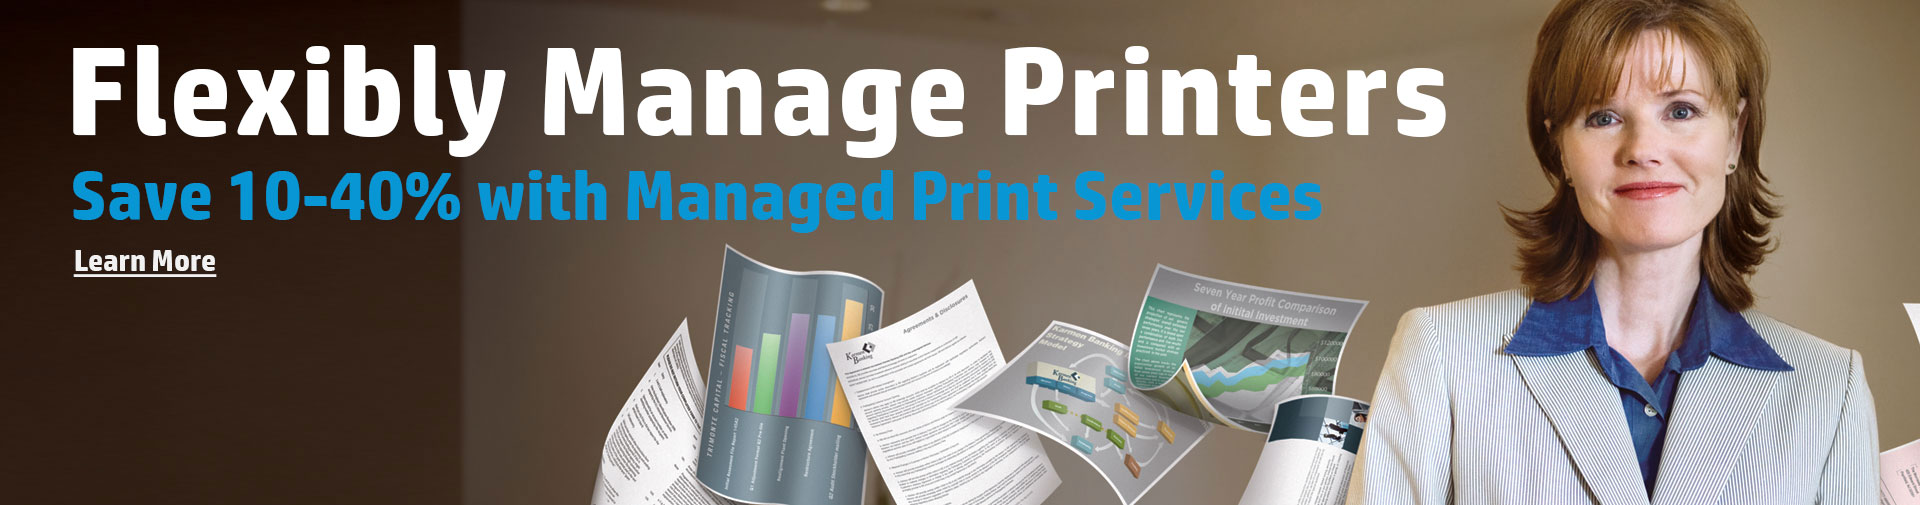 Flexibly Manage Printers